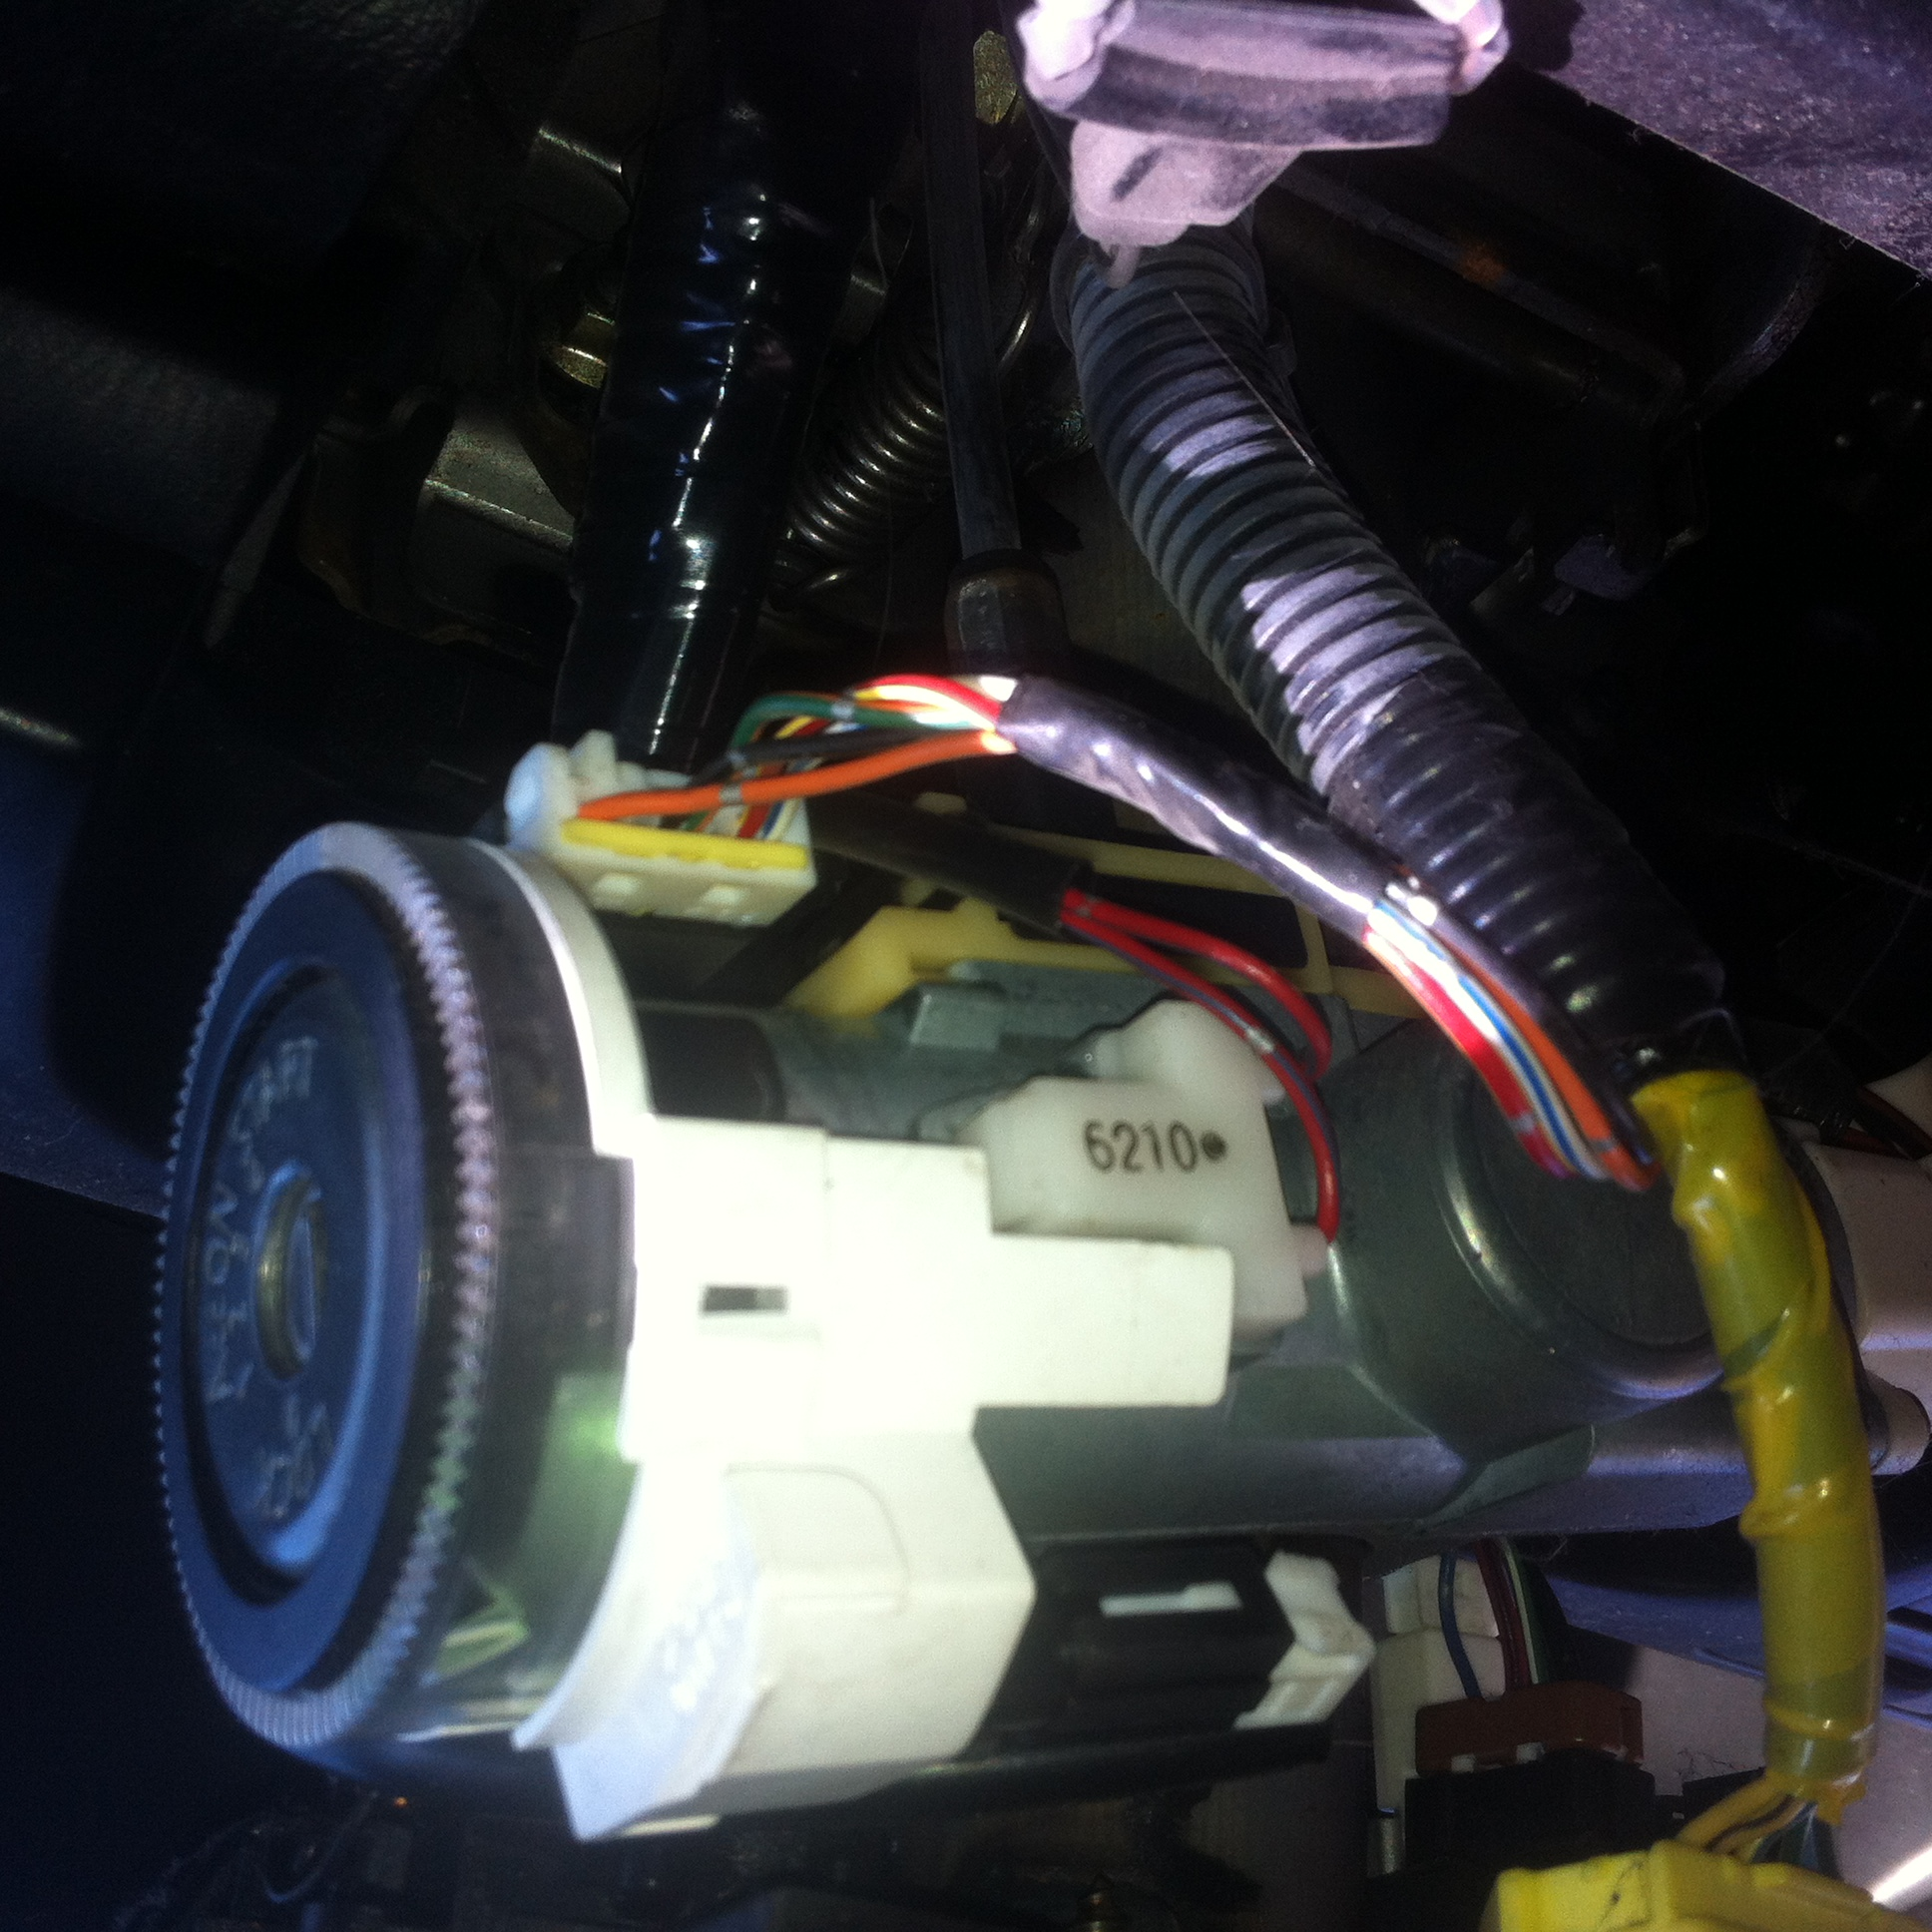 2001 Nissan Maxima Ignition Switch: I Am Having Problems With A The Starter From A 2001 Nissan